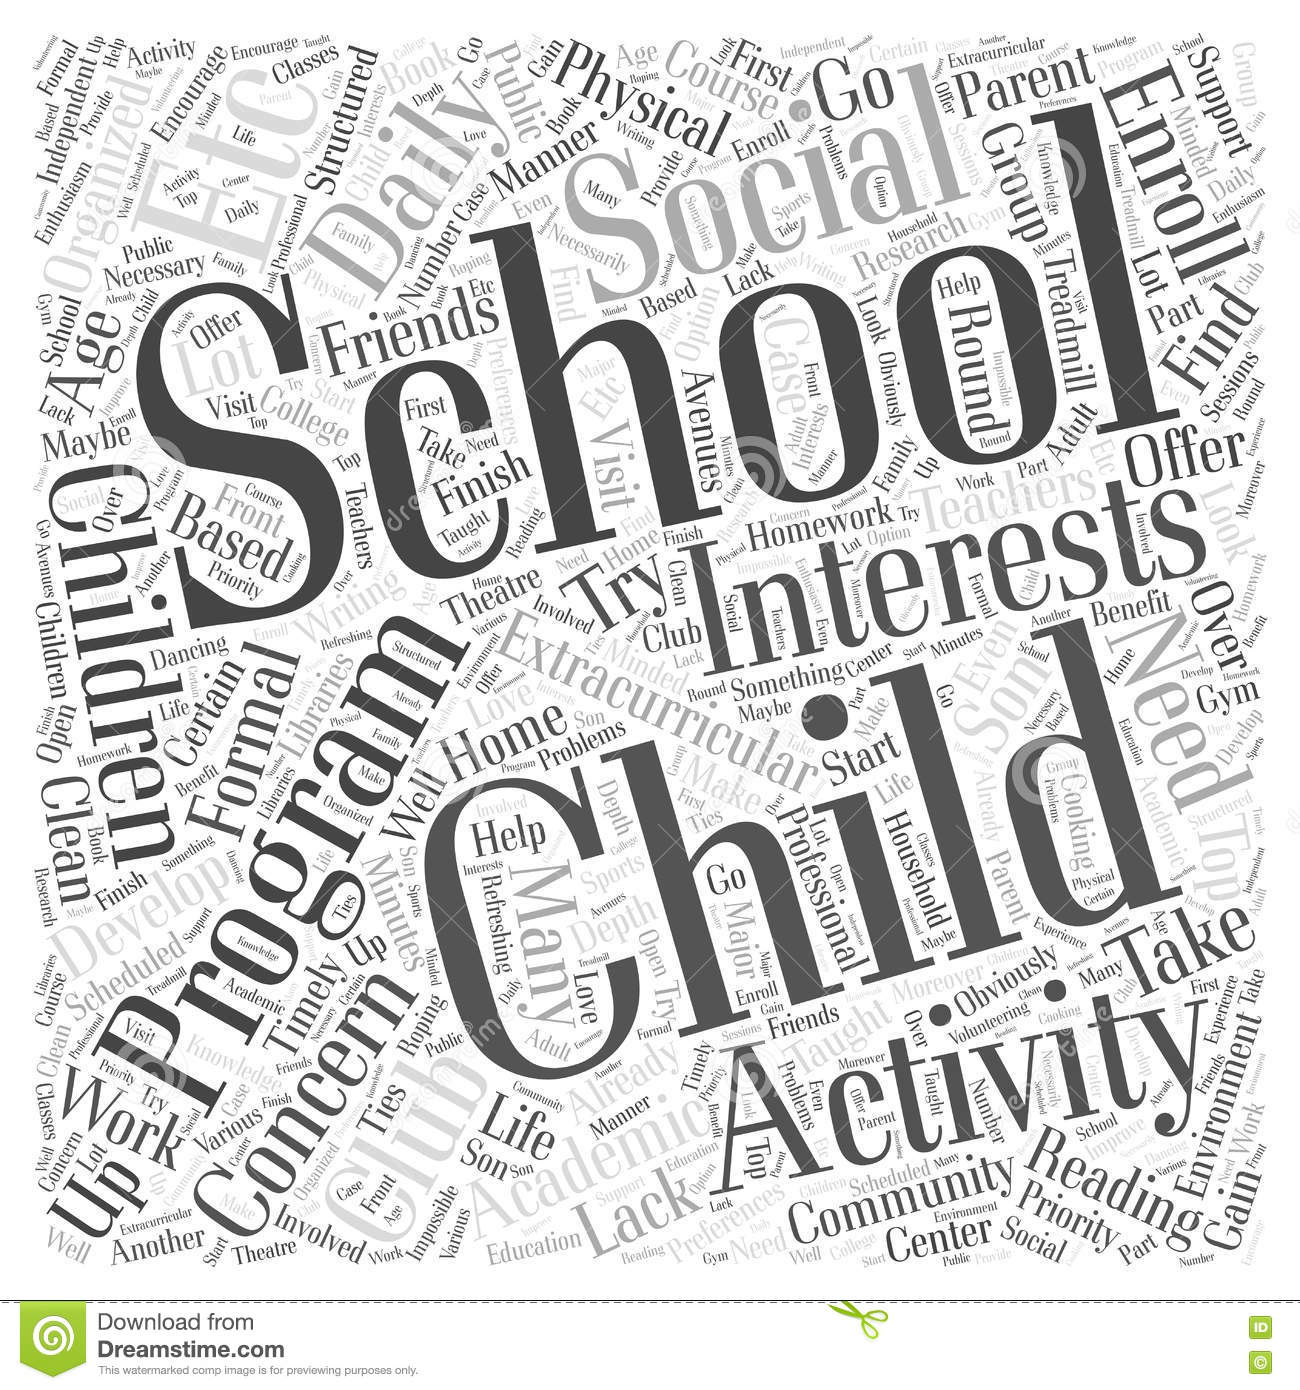 A Home Based After School Program Word Cloud Concept Stock.